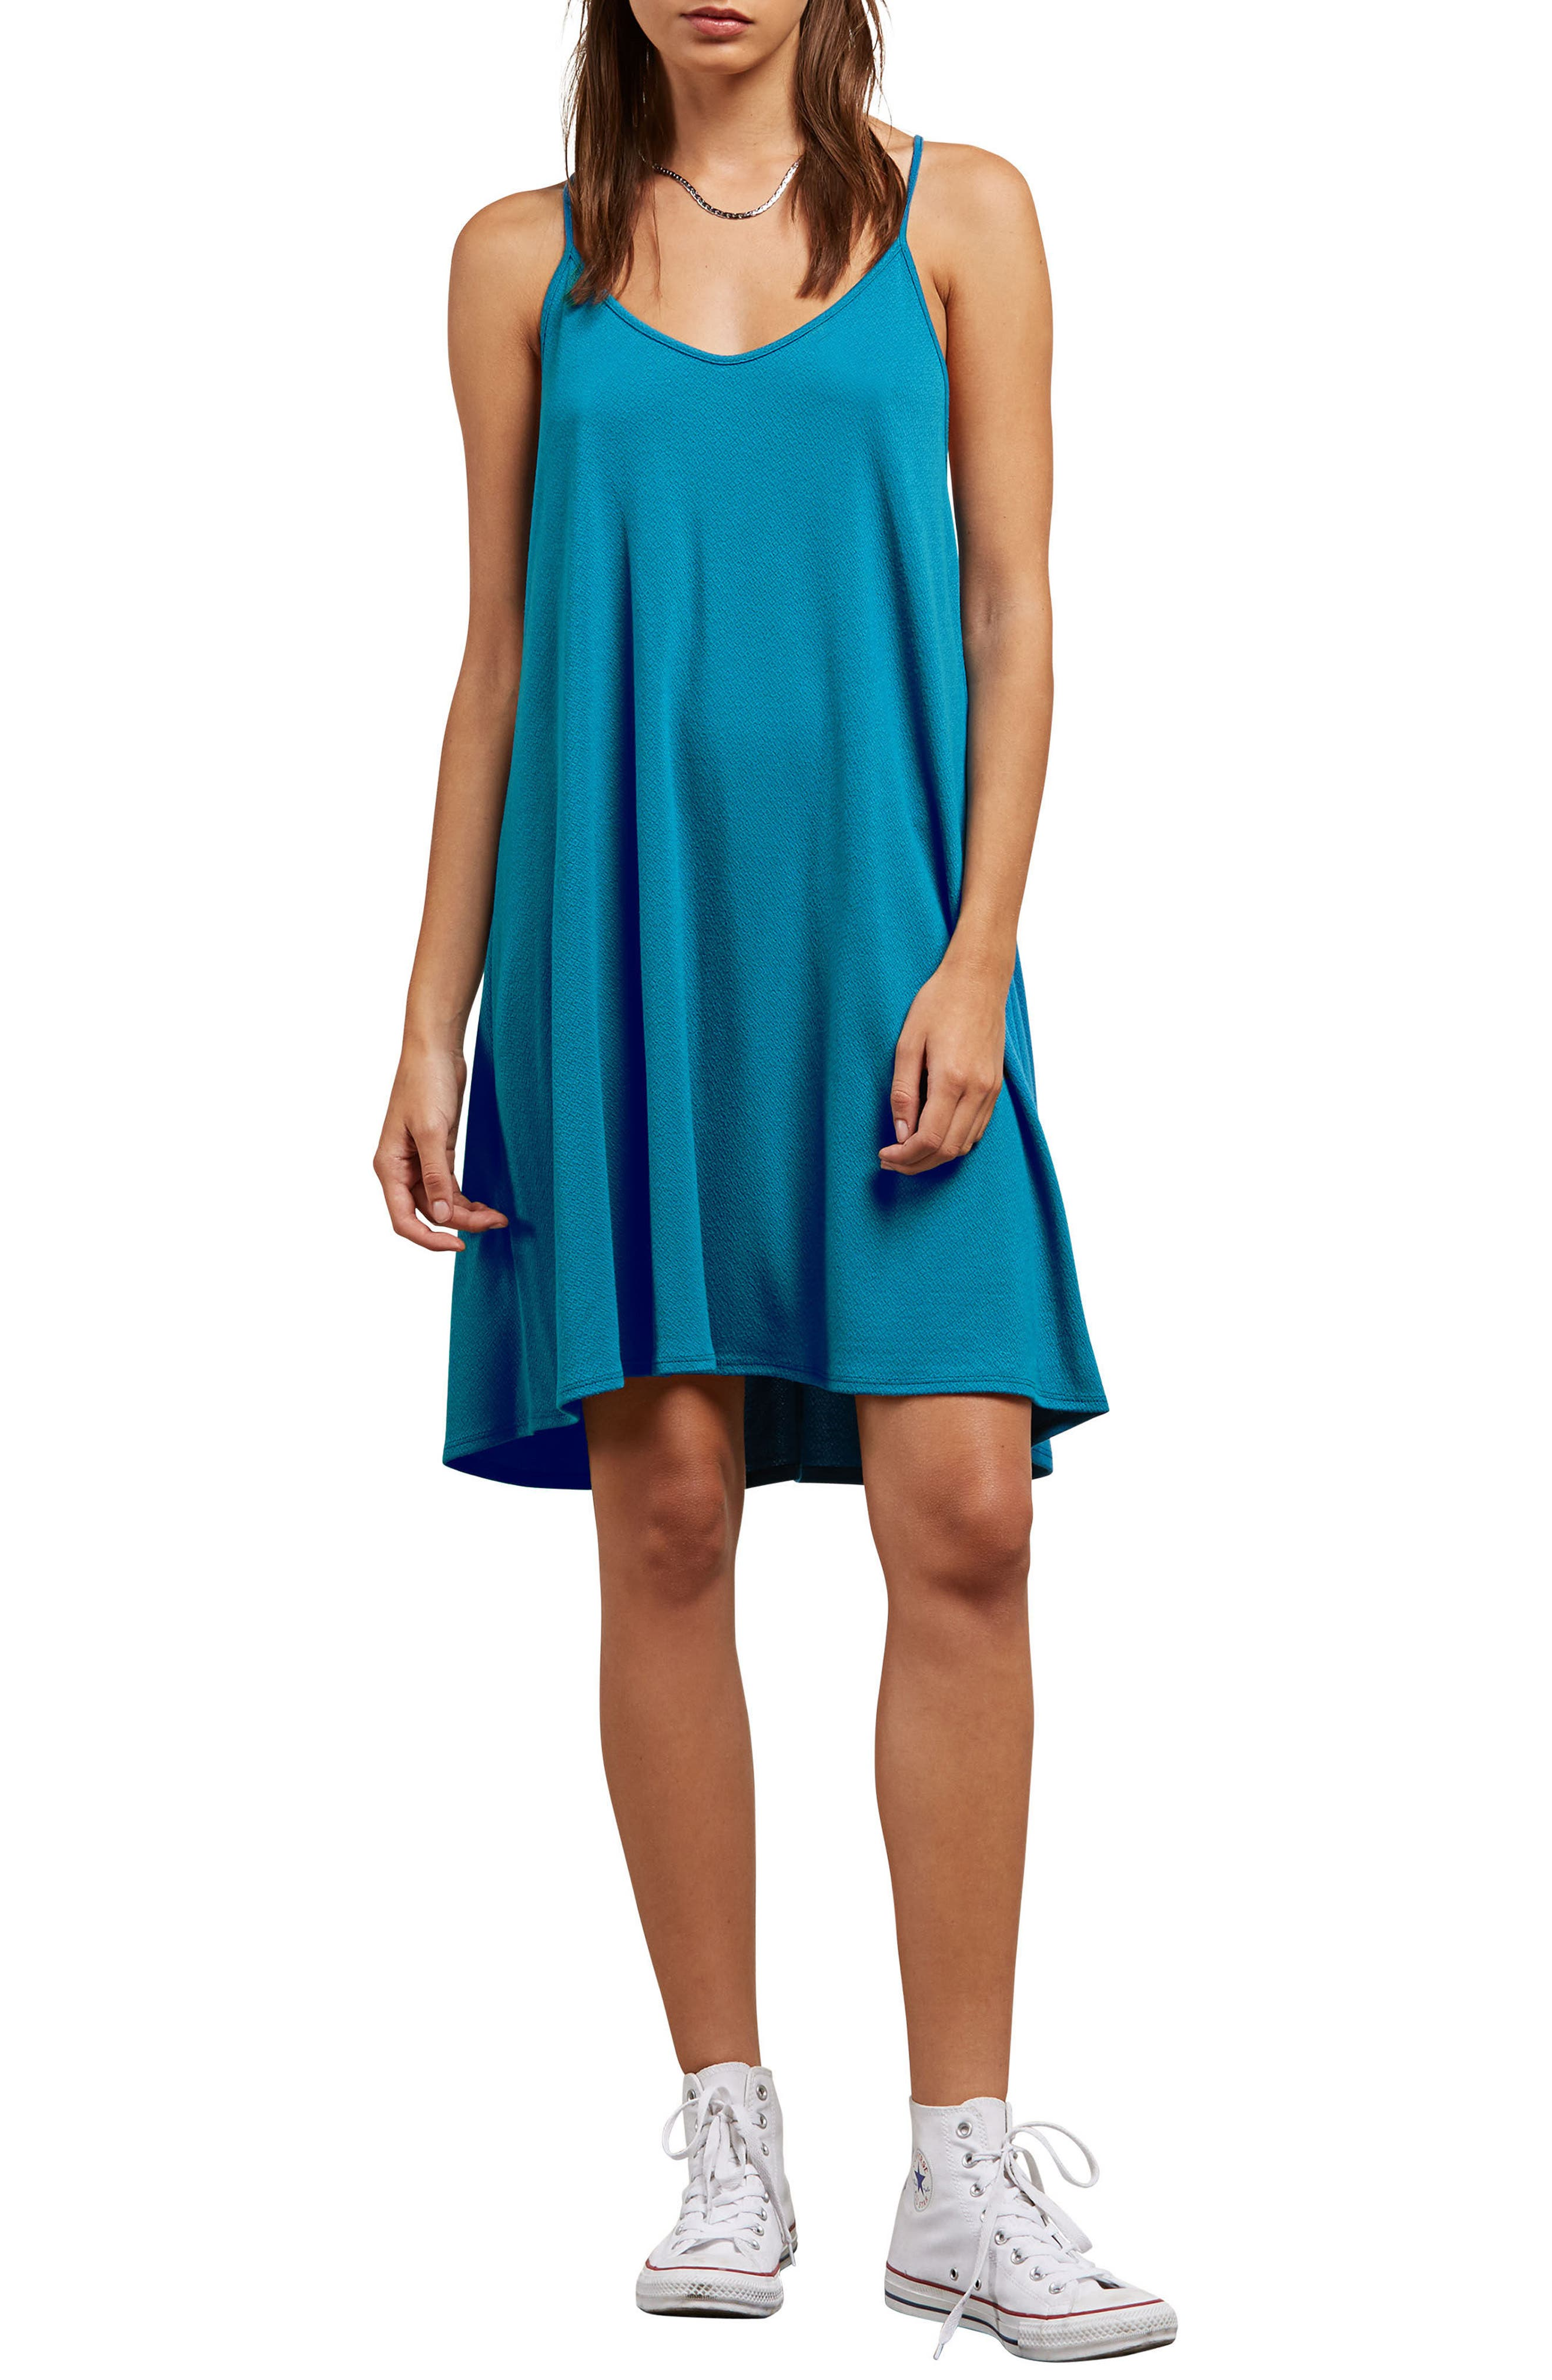 Dessert Vibes Dress,                         Main,                         color, Sea Blue